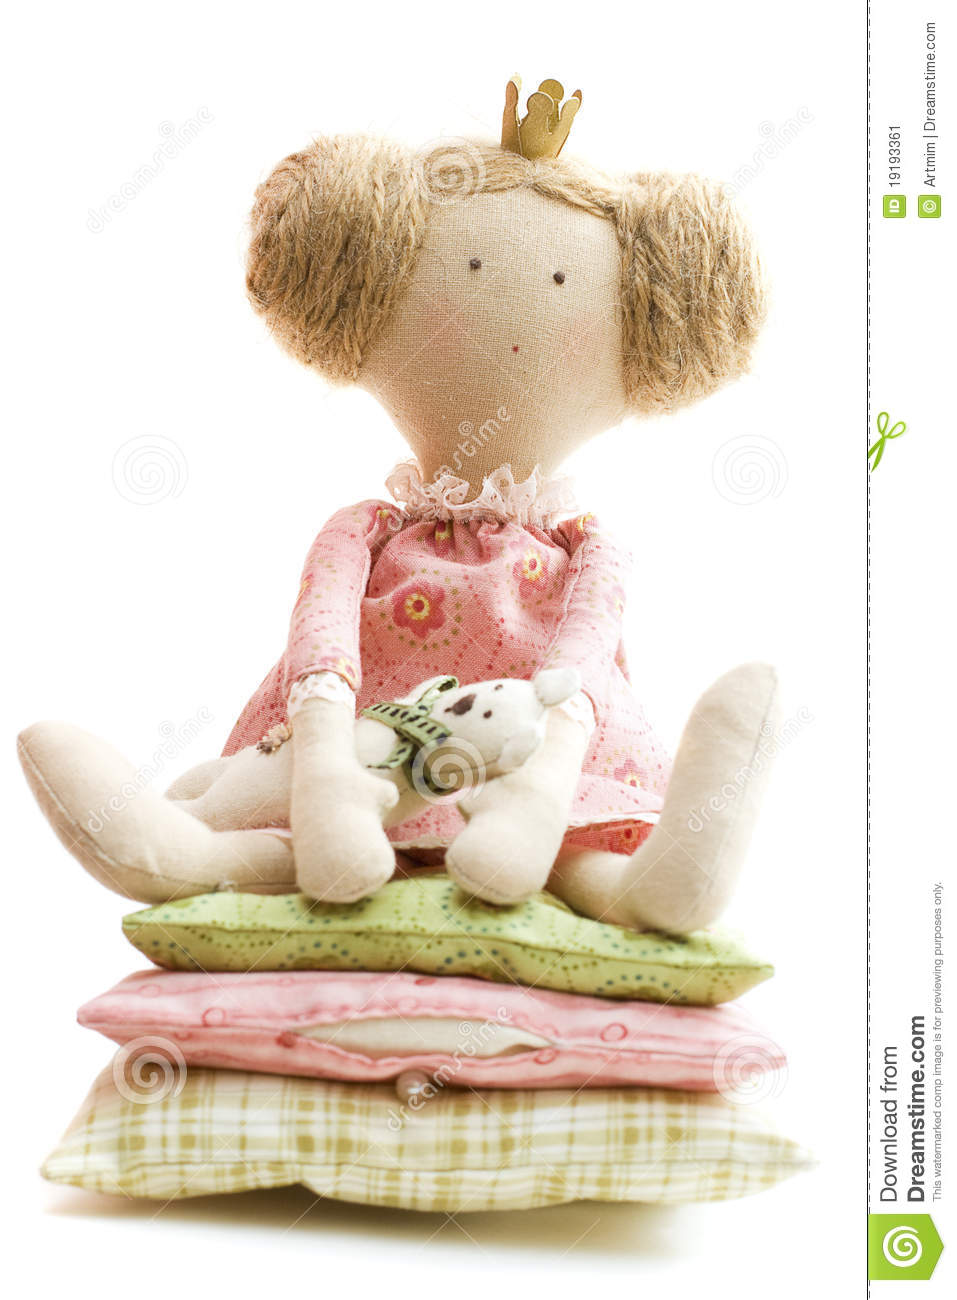 Doll Princess And The Pea Stock Image - Image: 19193361